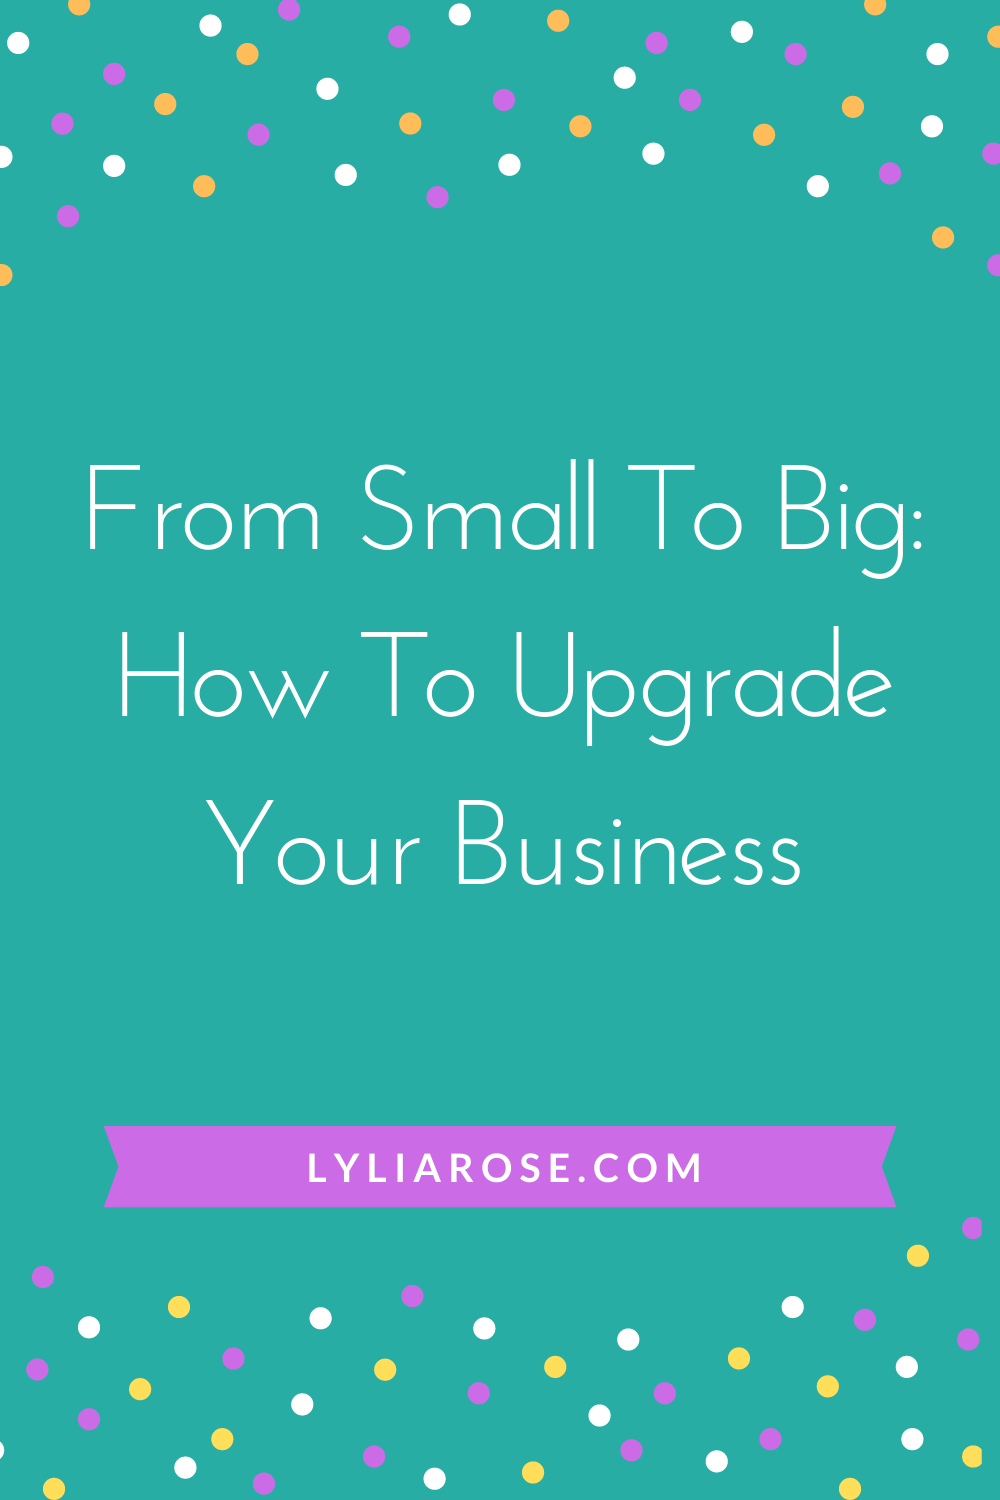 From Small To Big_ How To Upgrade Your Business